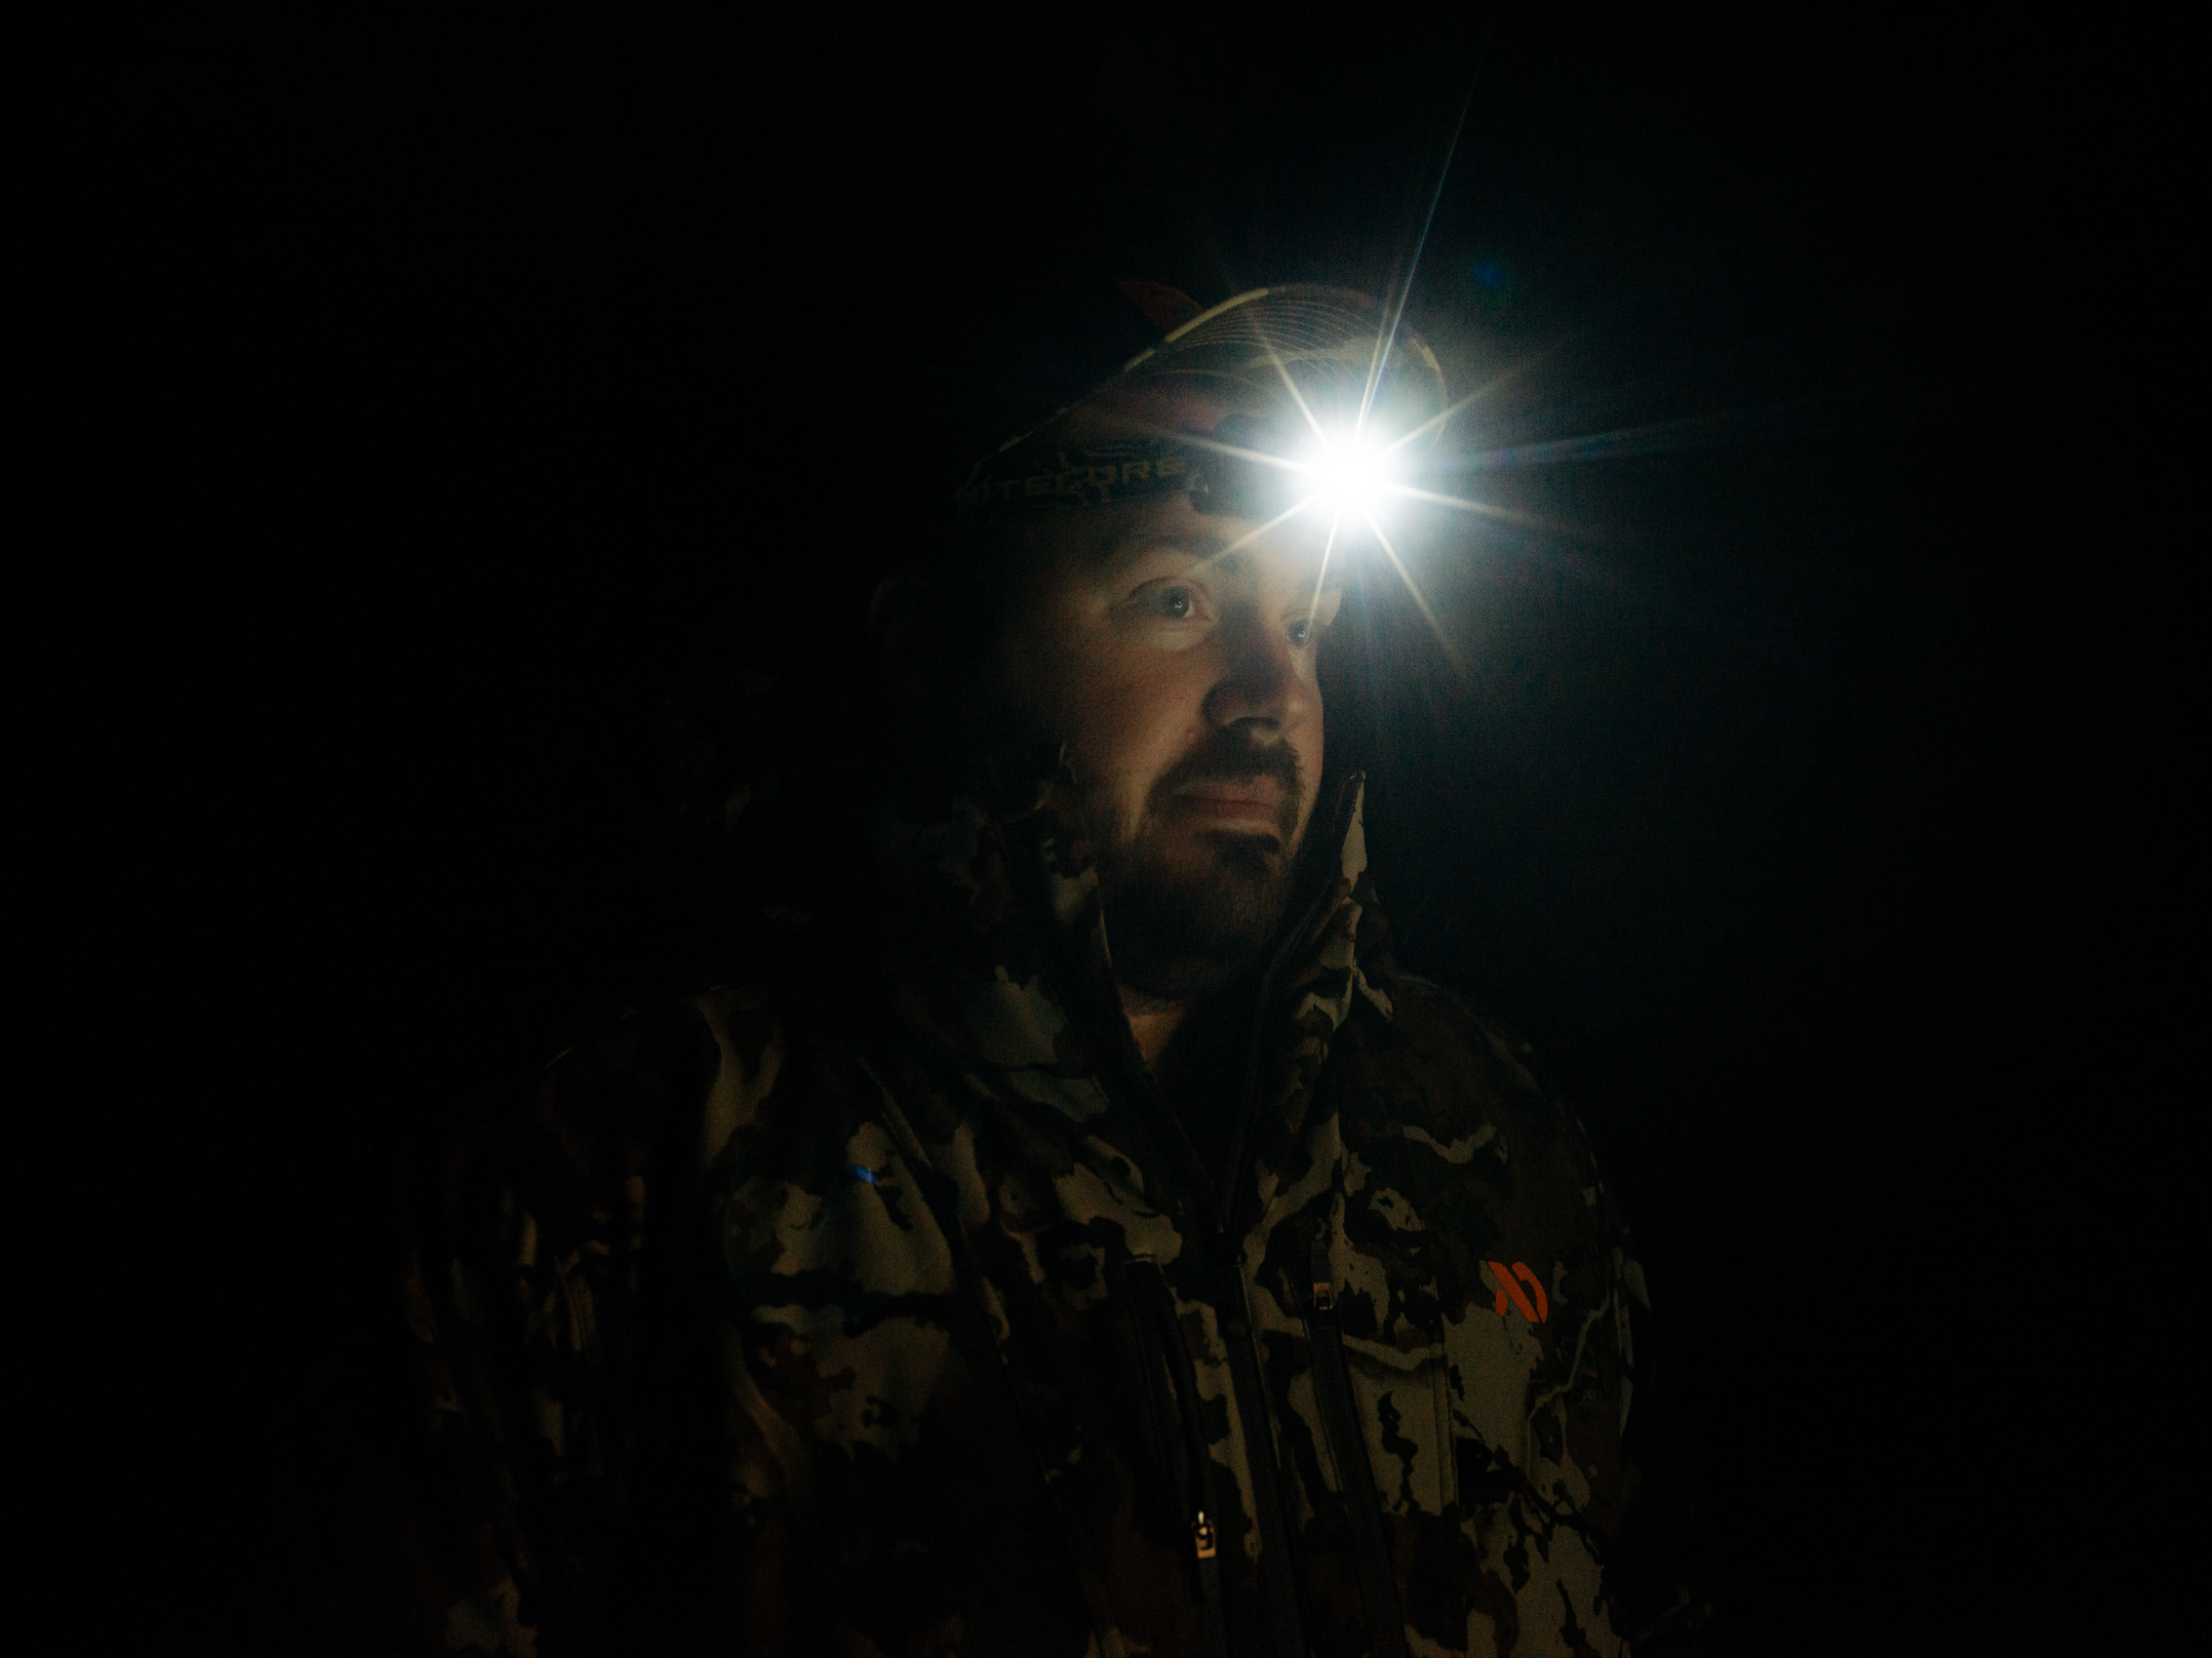 Deer Hunters with headlamp on head at night